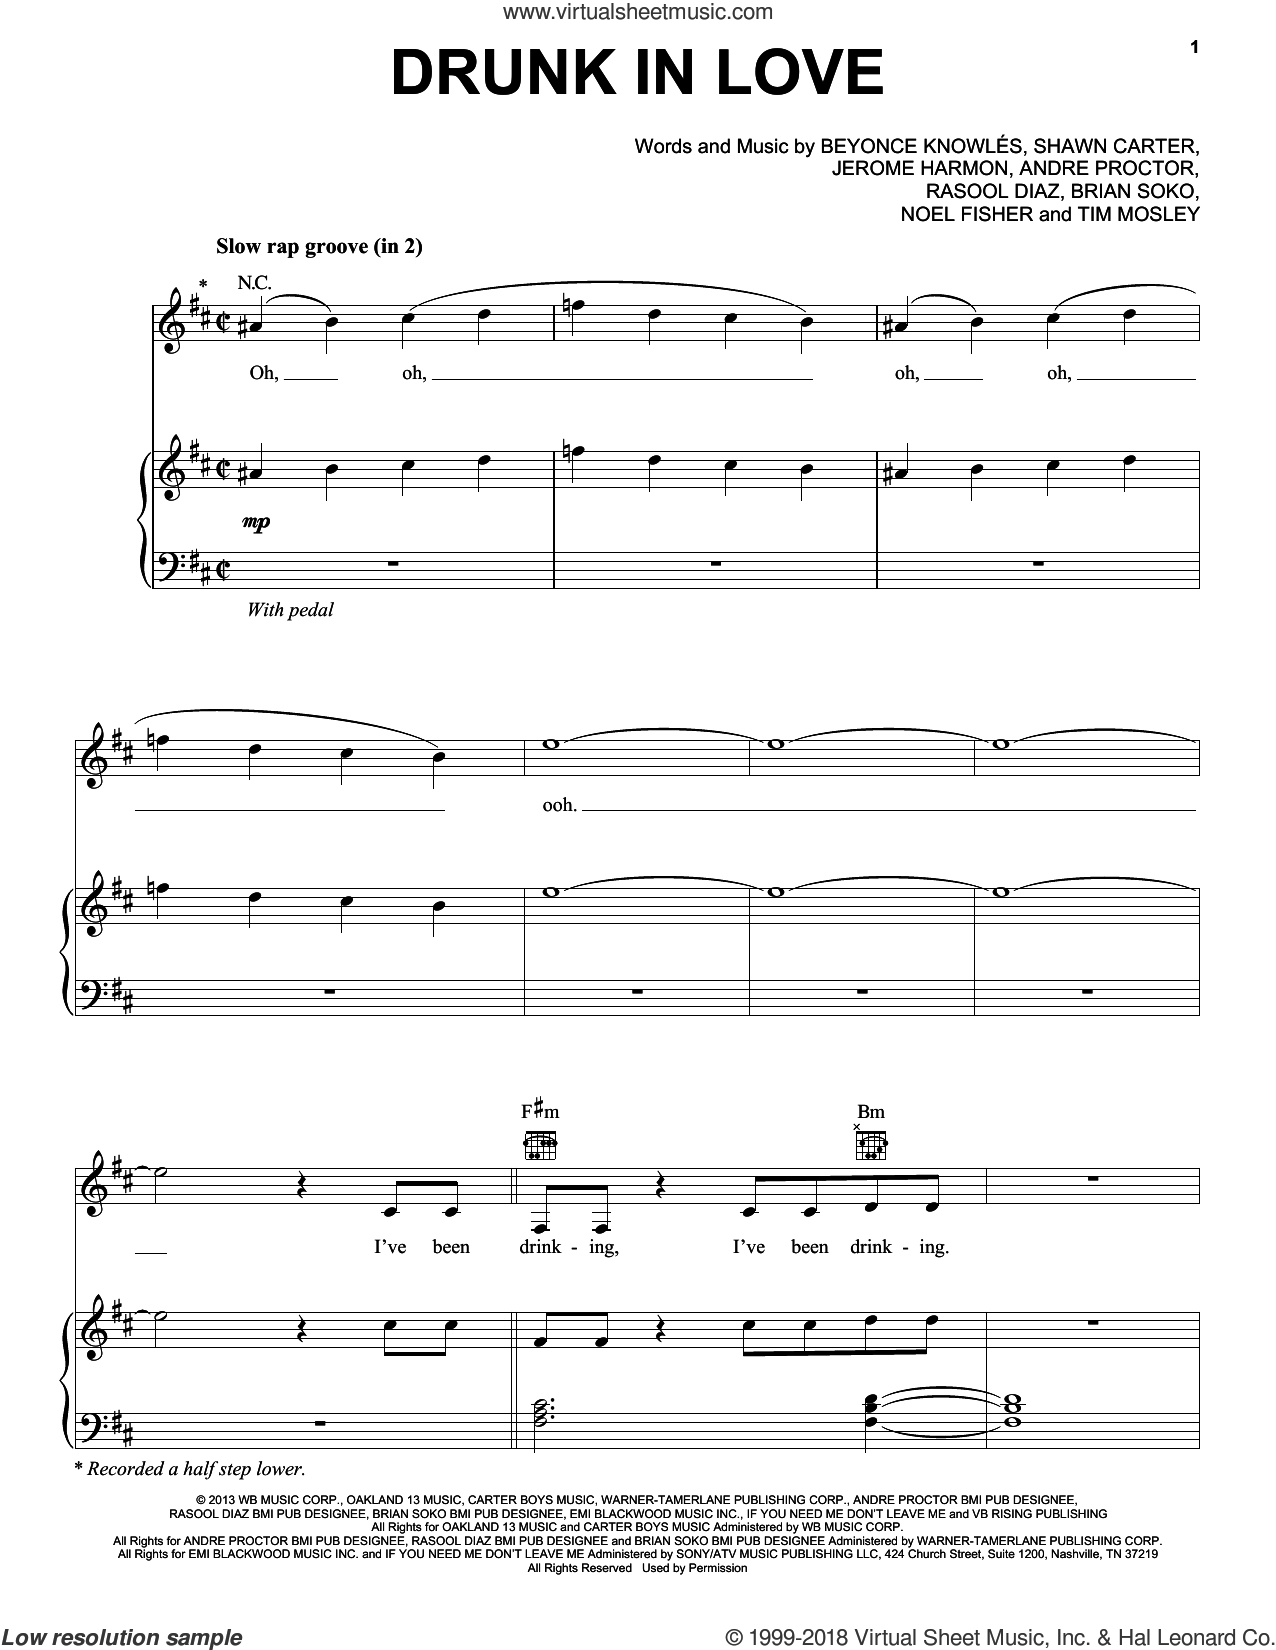 Drunk In Love sheet music for voice, piano or guitar by Beyonce Featuring Jay Z, BeyoncA�A�, Beyonce, Beyonce Knowles, Jerome Harmon, Noel Fisher, Shawn Carter and Tim Mosley. Score Image Preview.